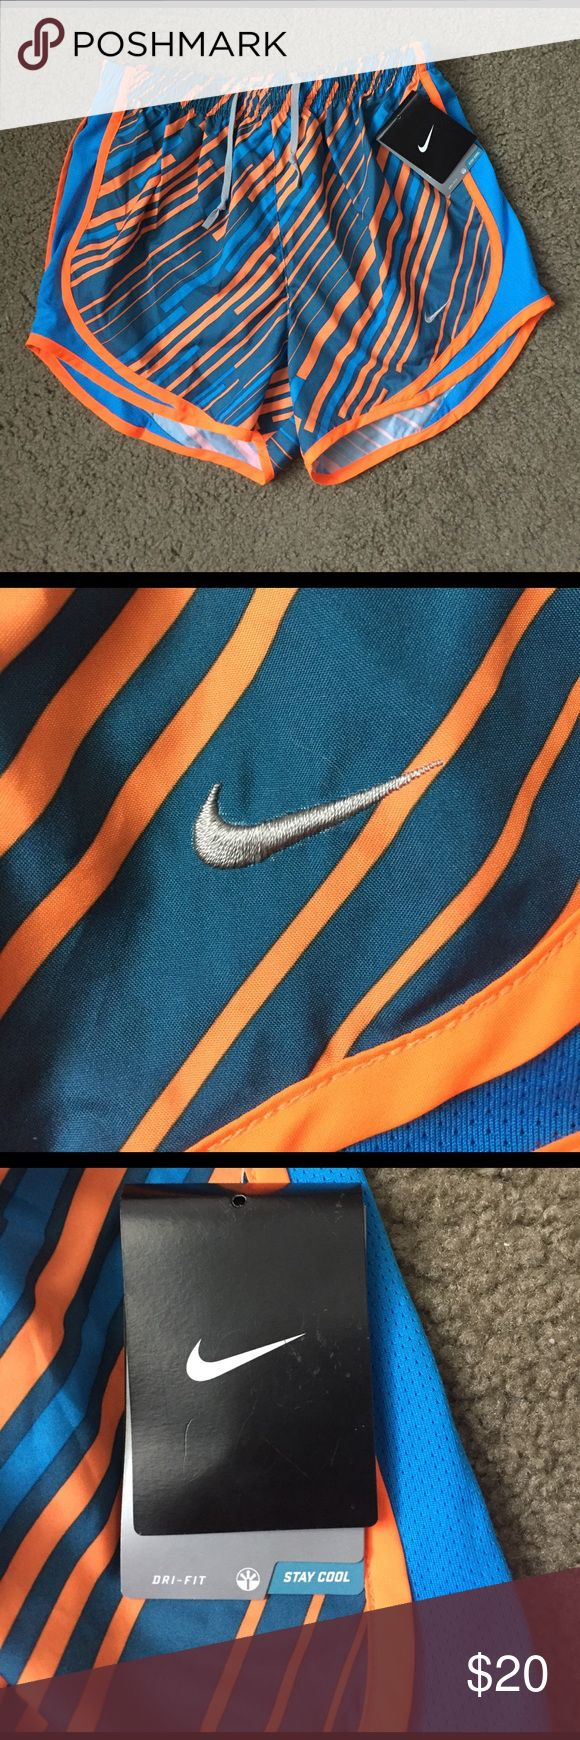 Nike Dri Fit Stay Cool Shorts Brand New Blue and Orange Dri Fit Stay Cool Running Shorts. Nike Shorts